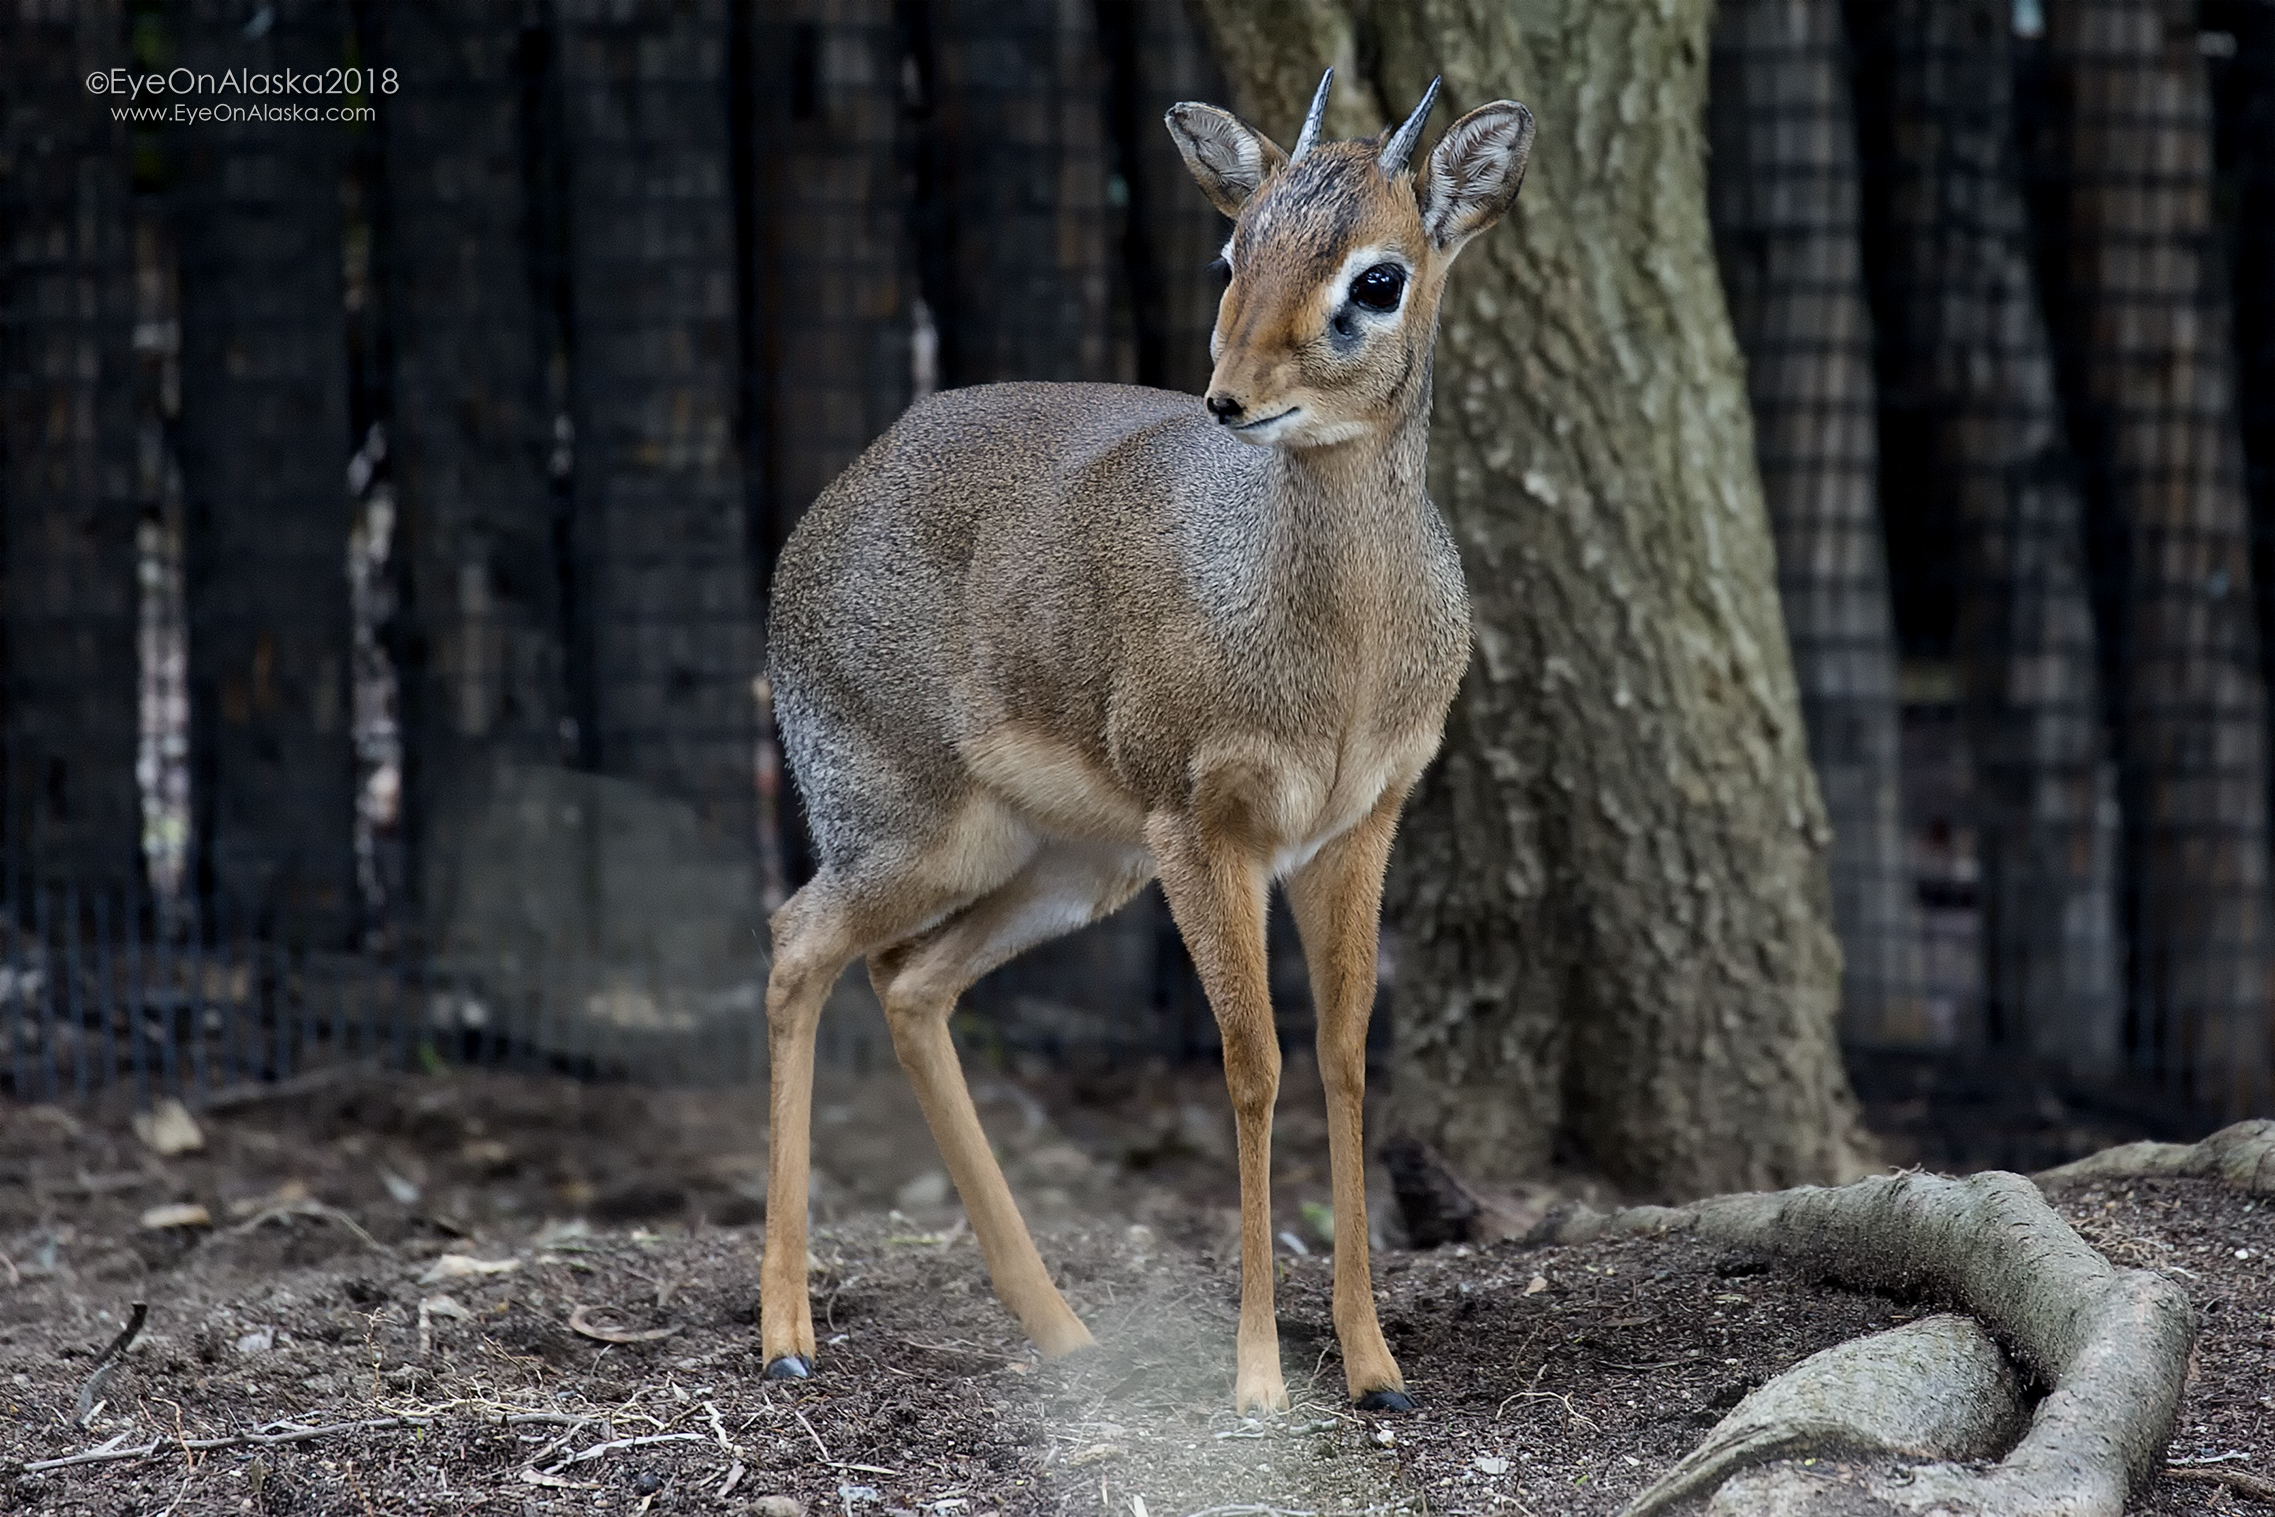 A Dik-dik.  These cute little critters were everywhere in Kenya.